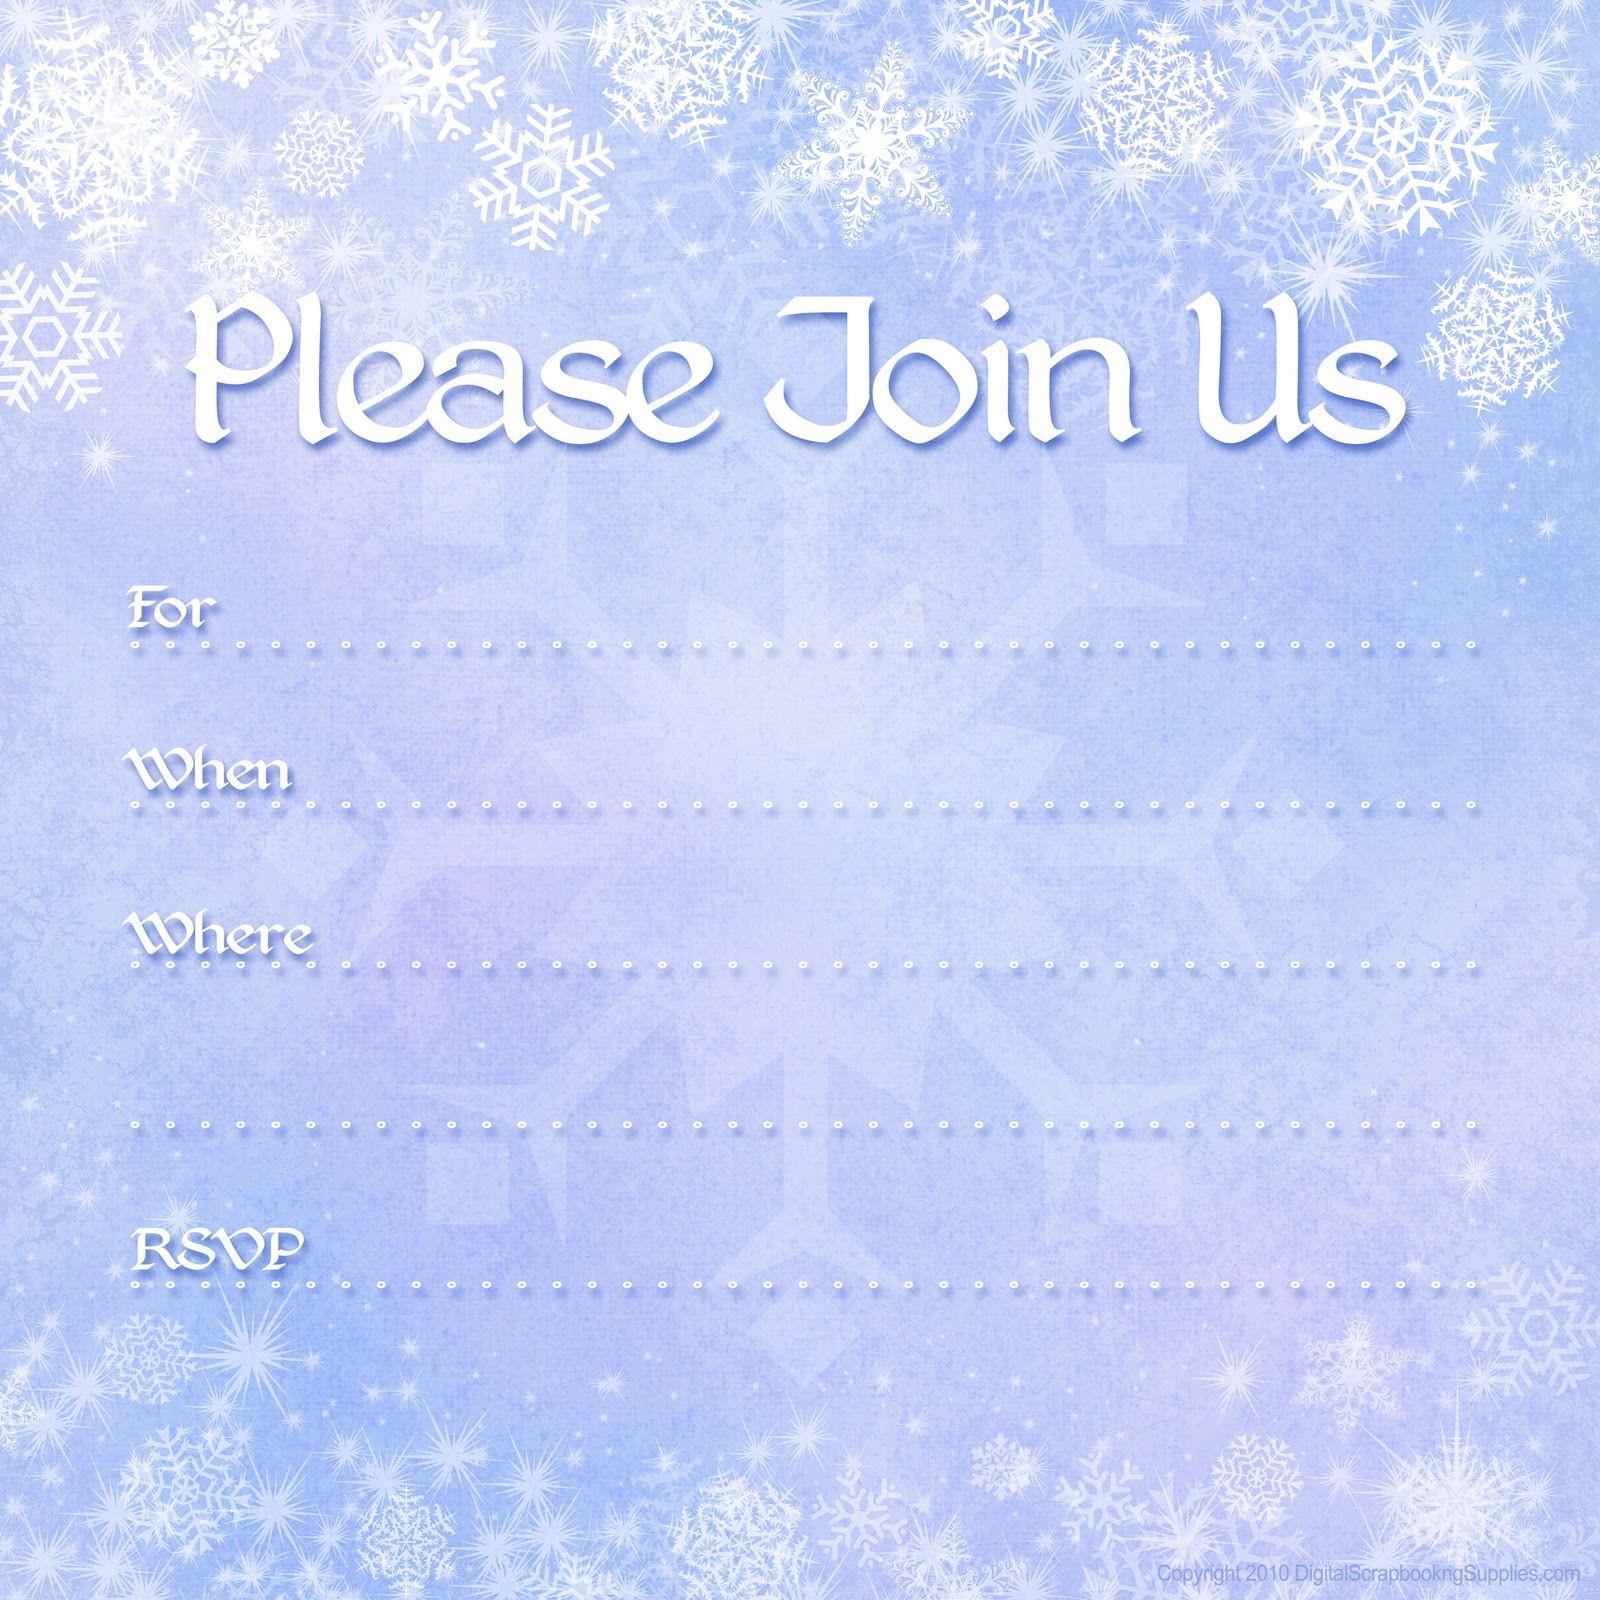 Free printable invites free printable party invitations free free printable invites free printable party invitations free winter holiday invitations stopboris Image collections